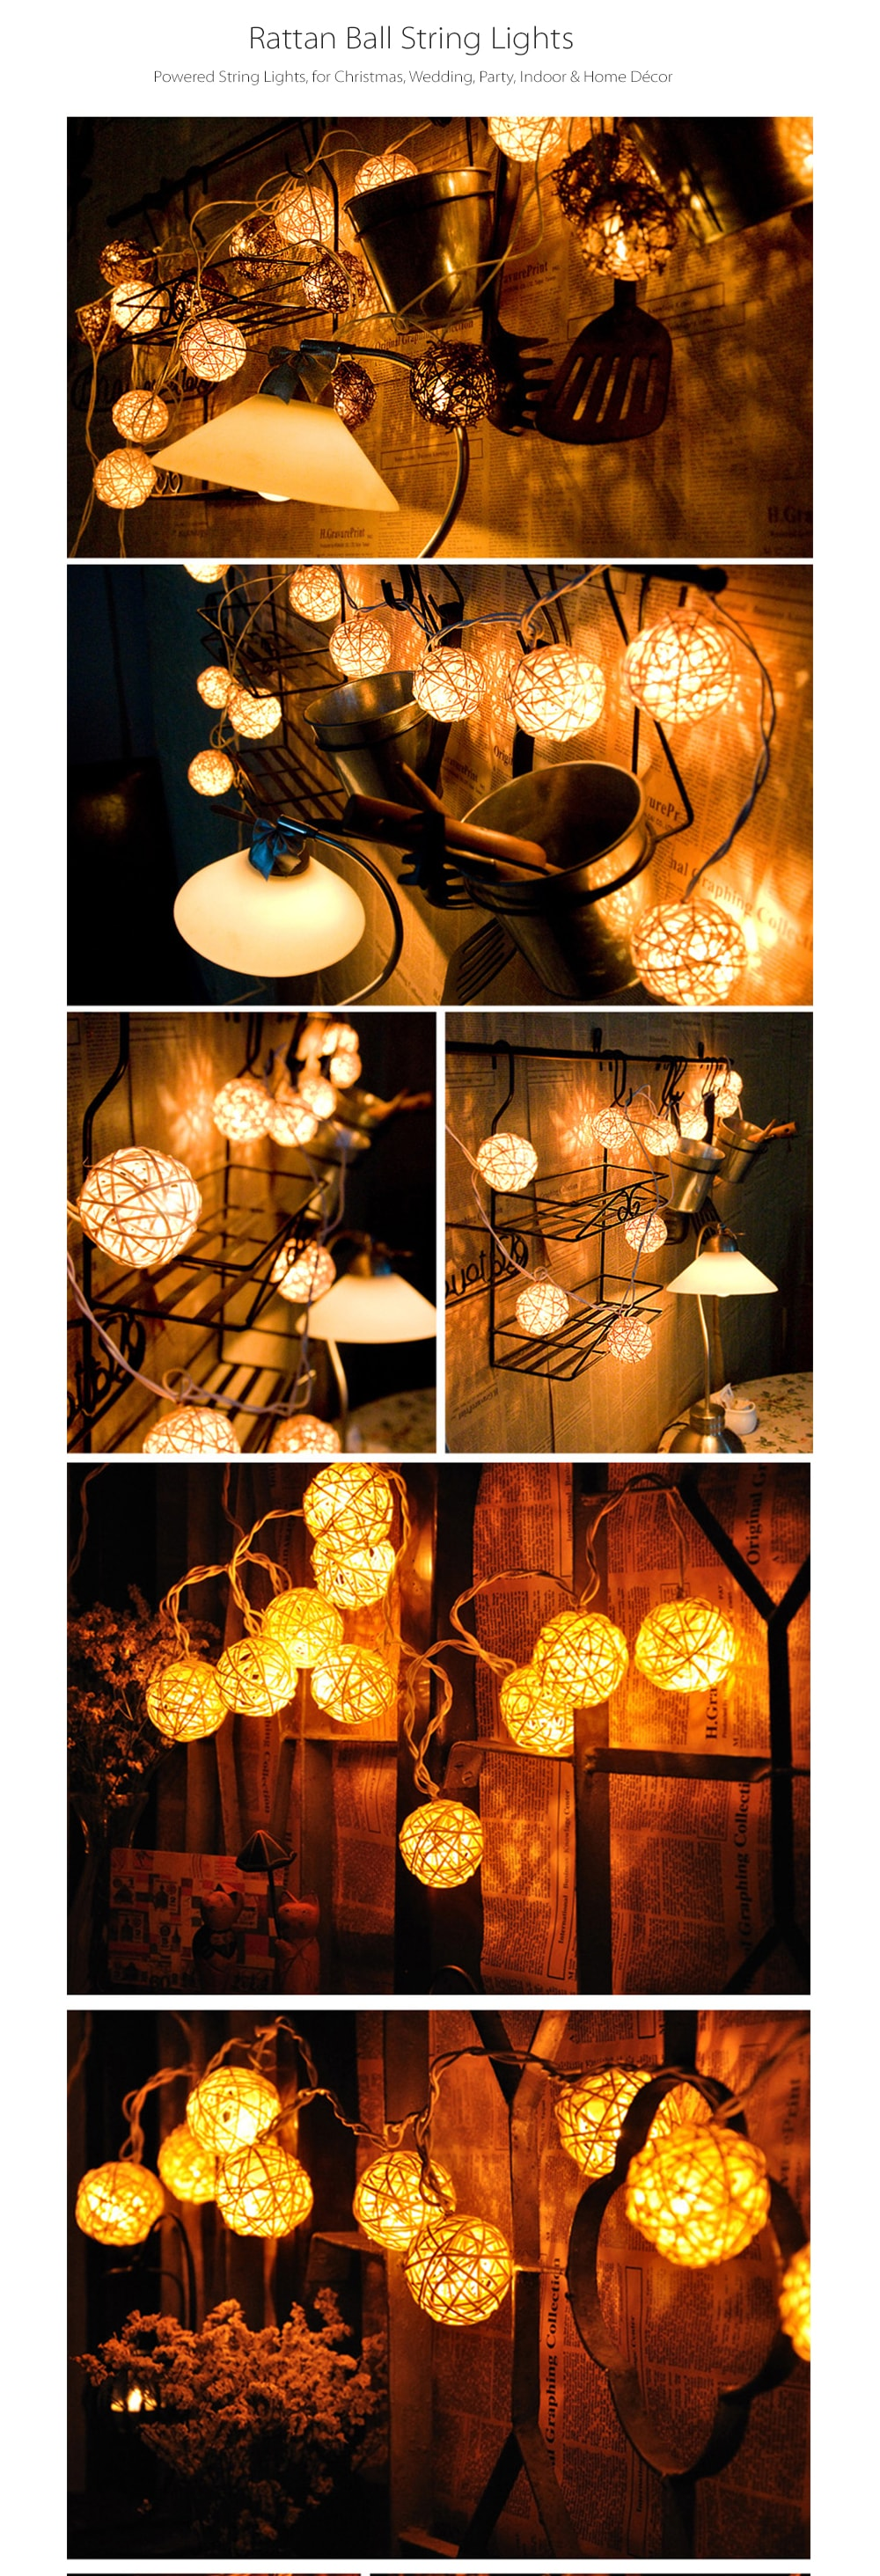 Rattan Ball String Lights Warm Your House